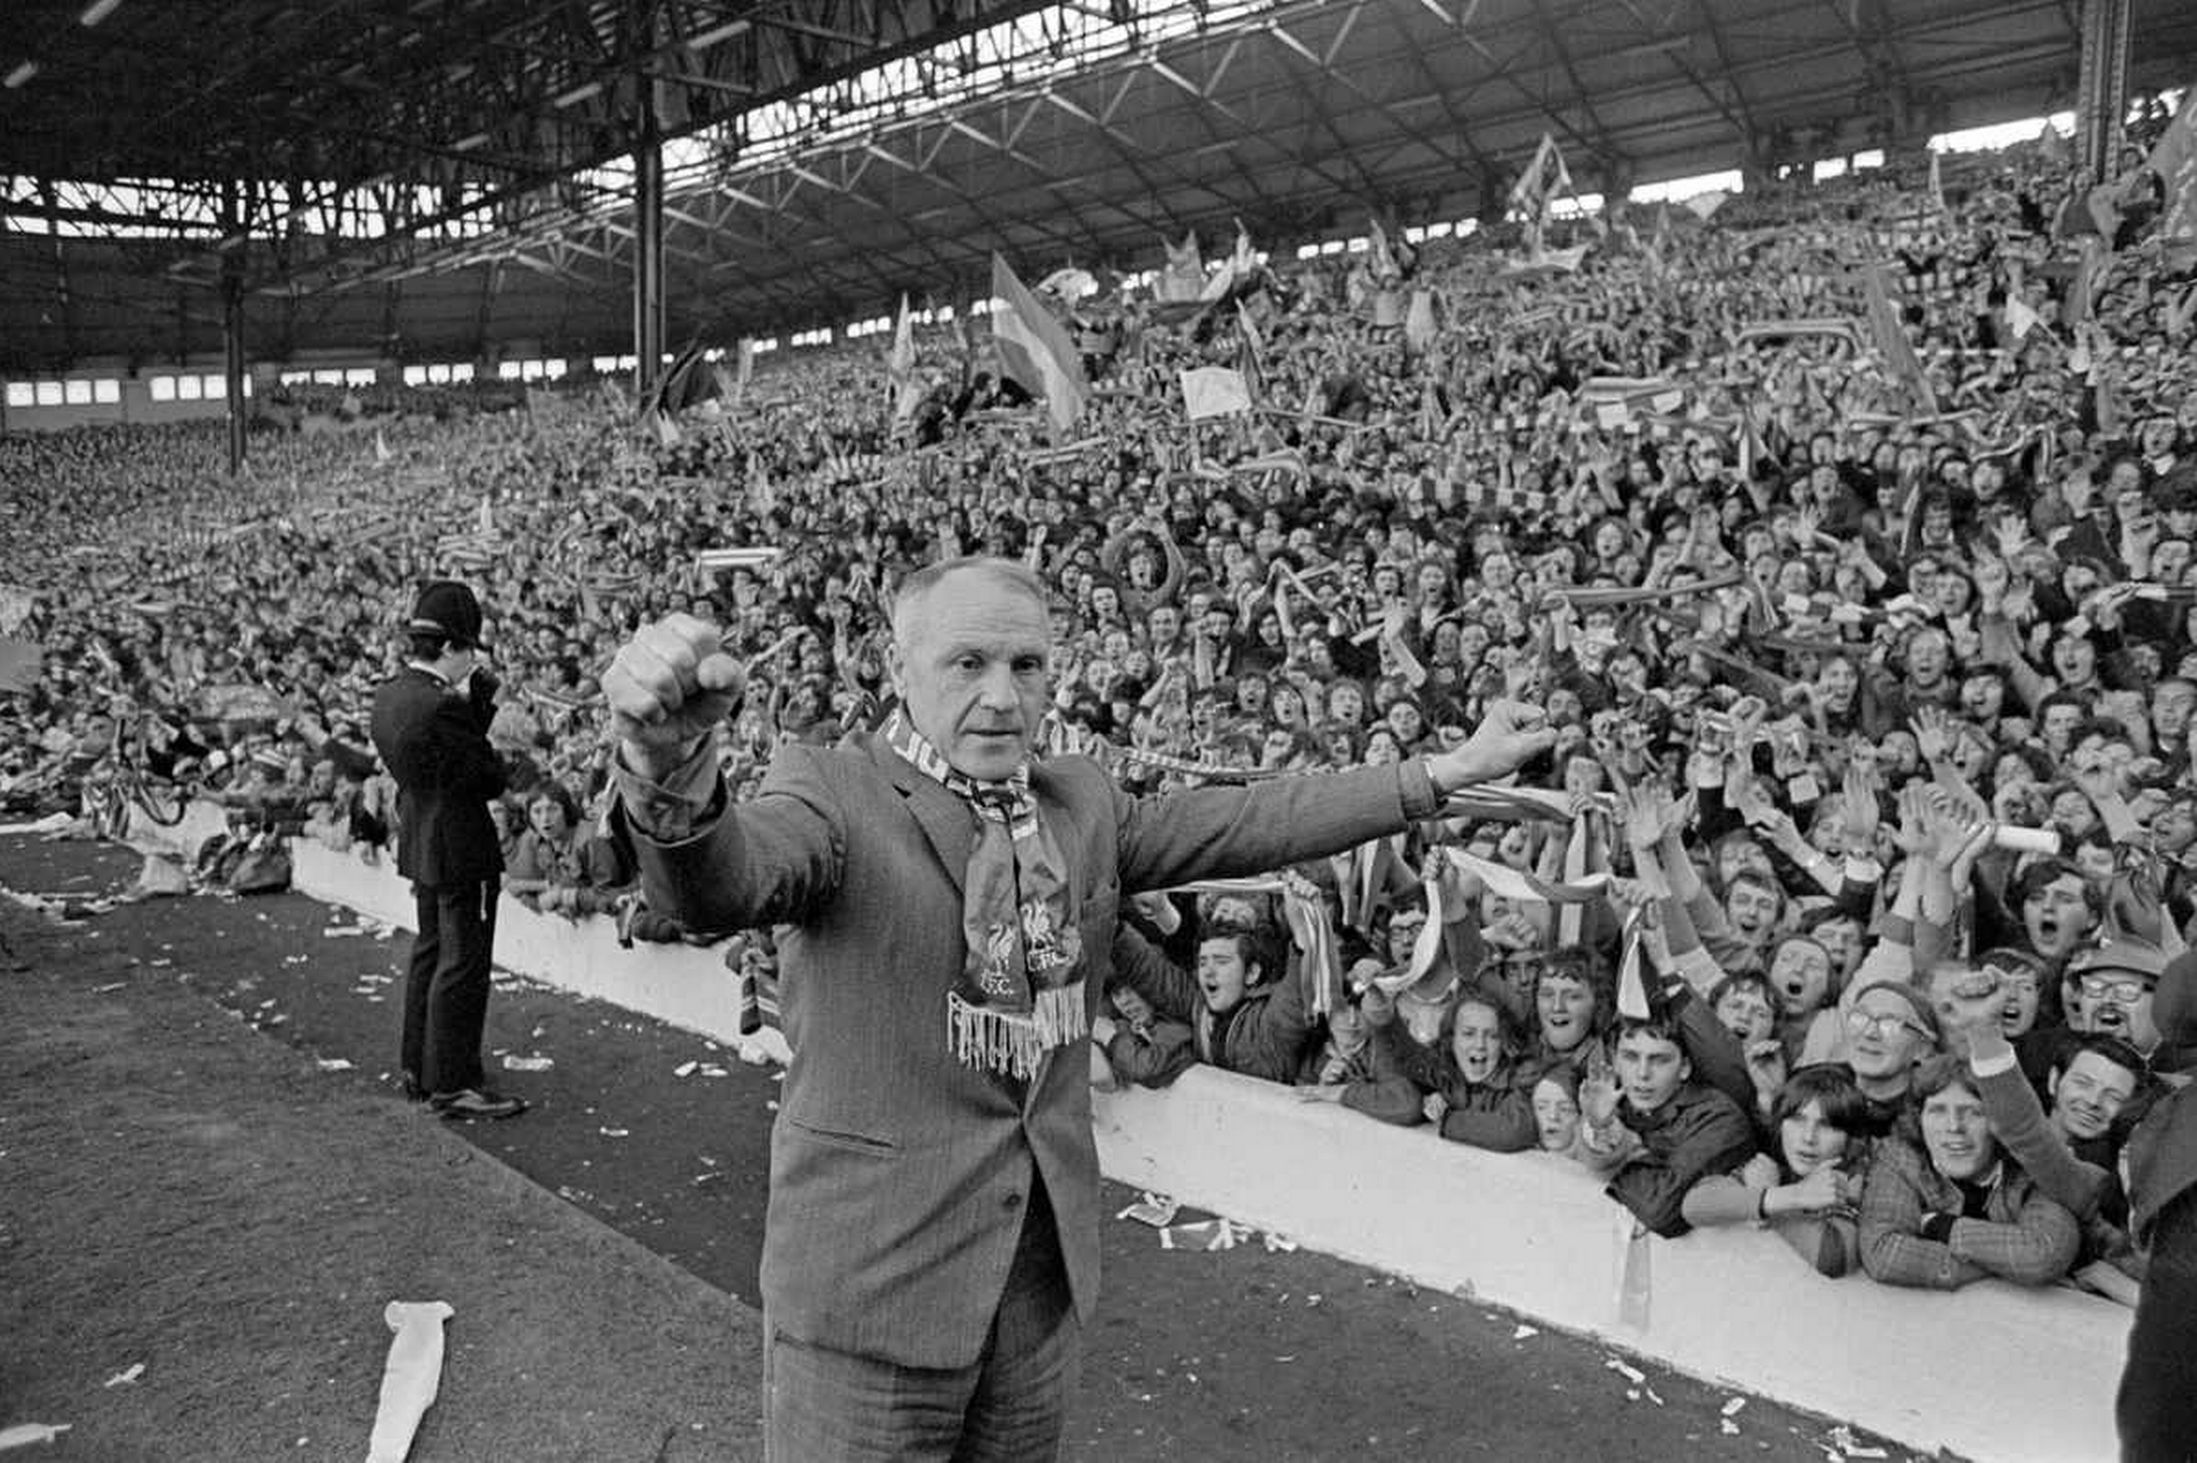 Shankly celebrates with the kop